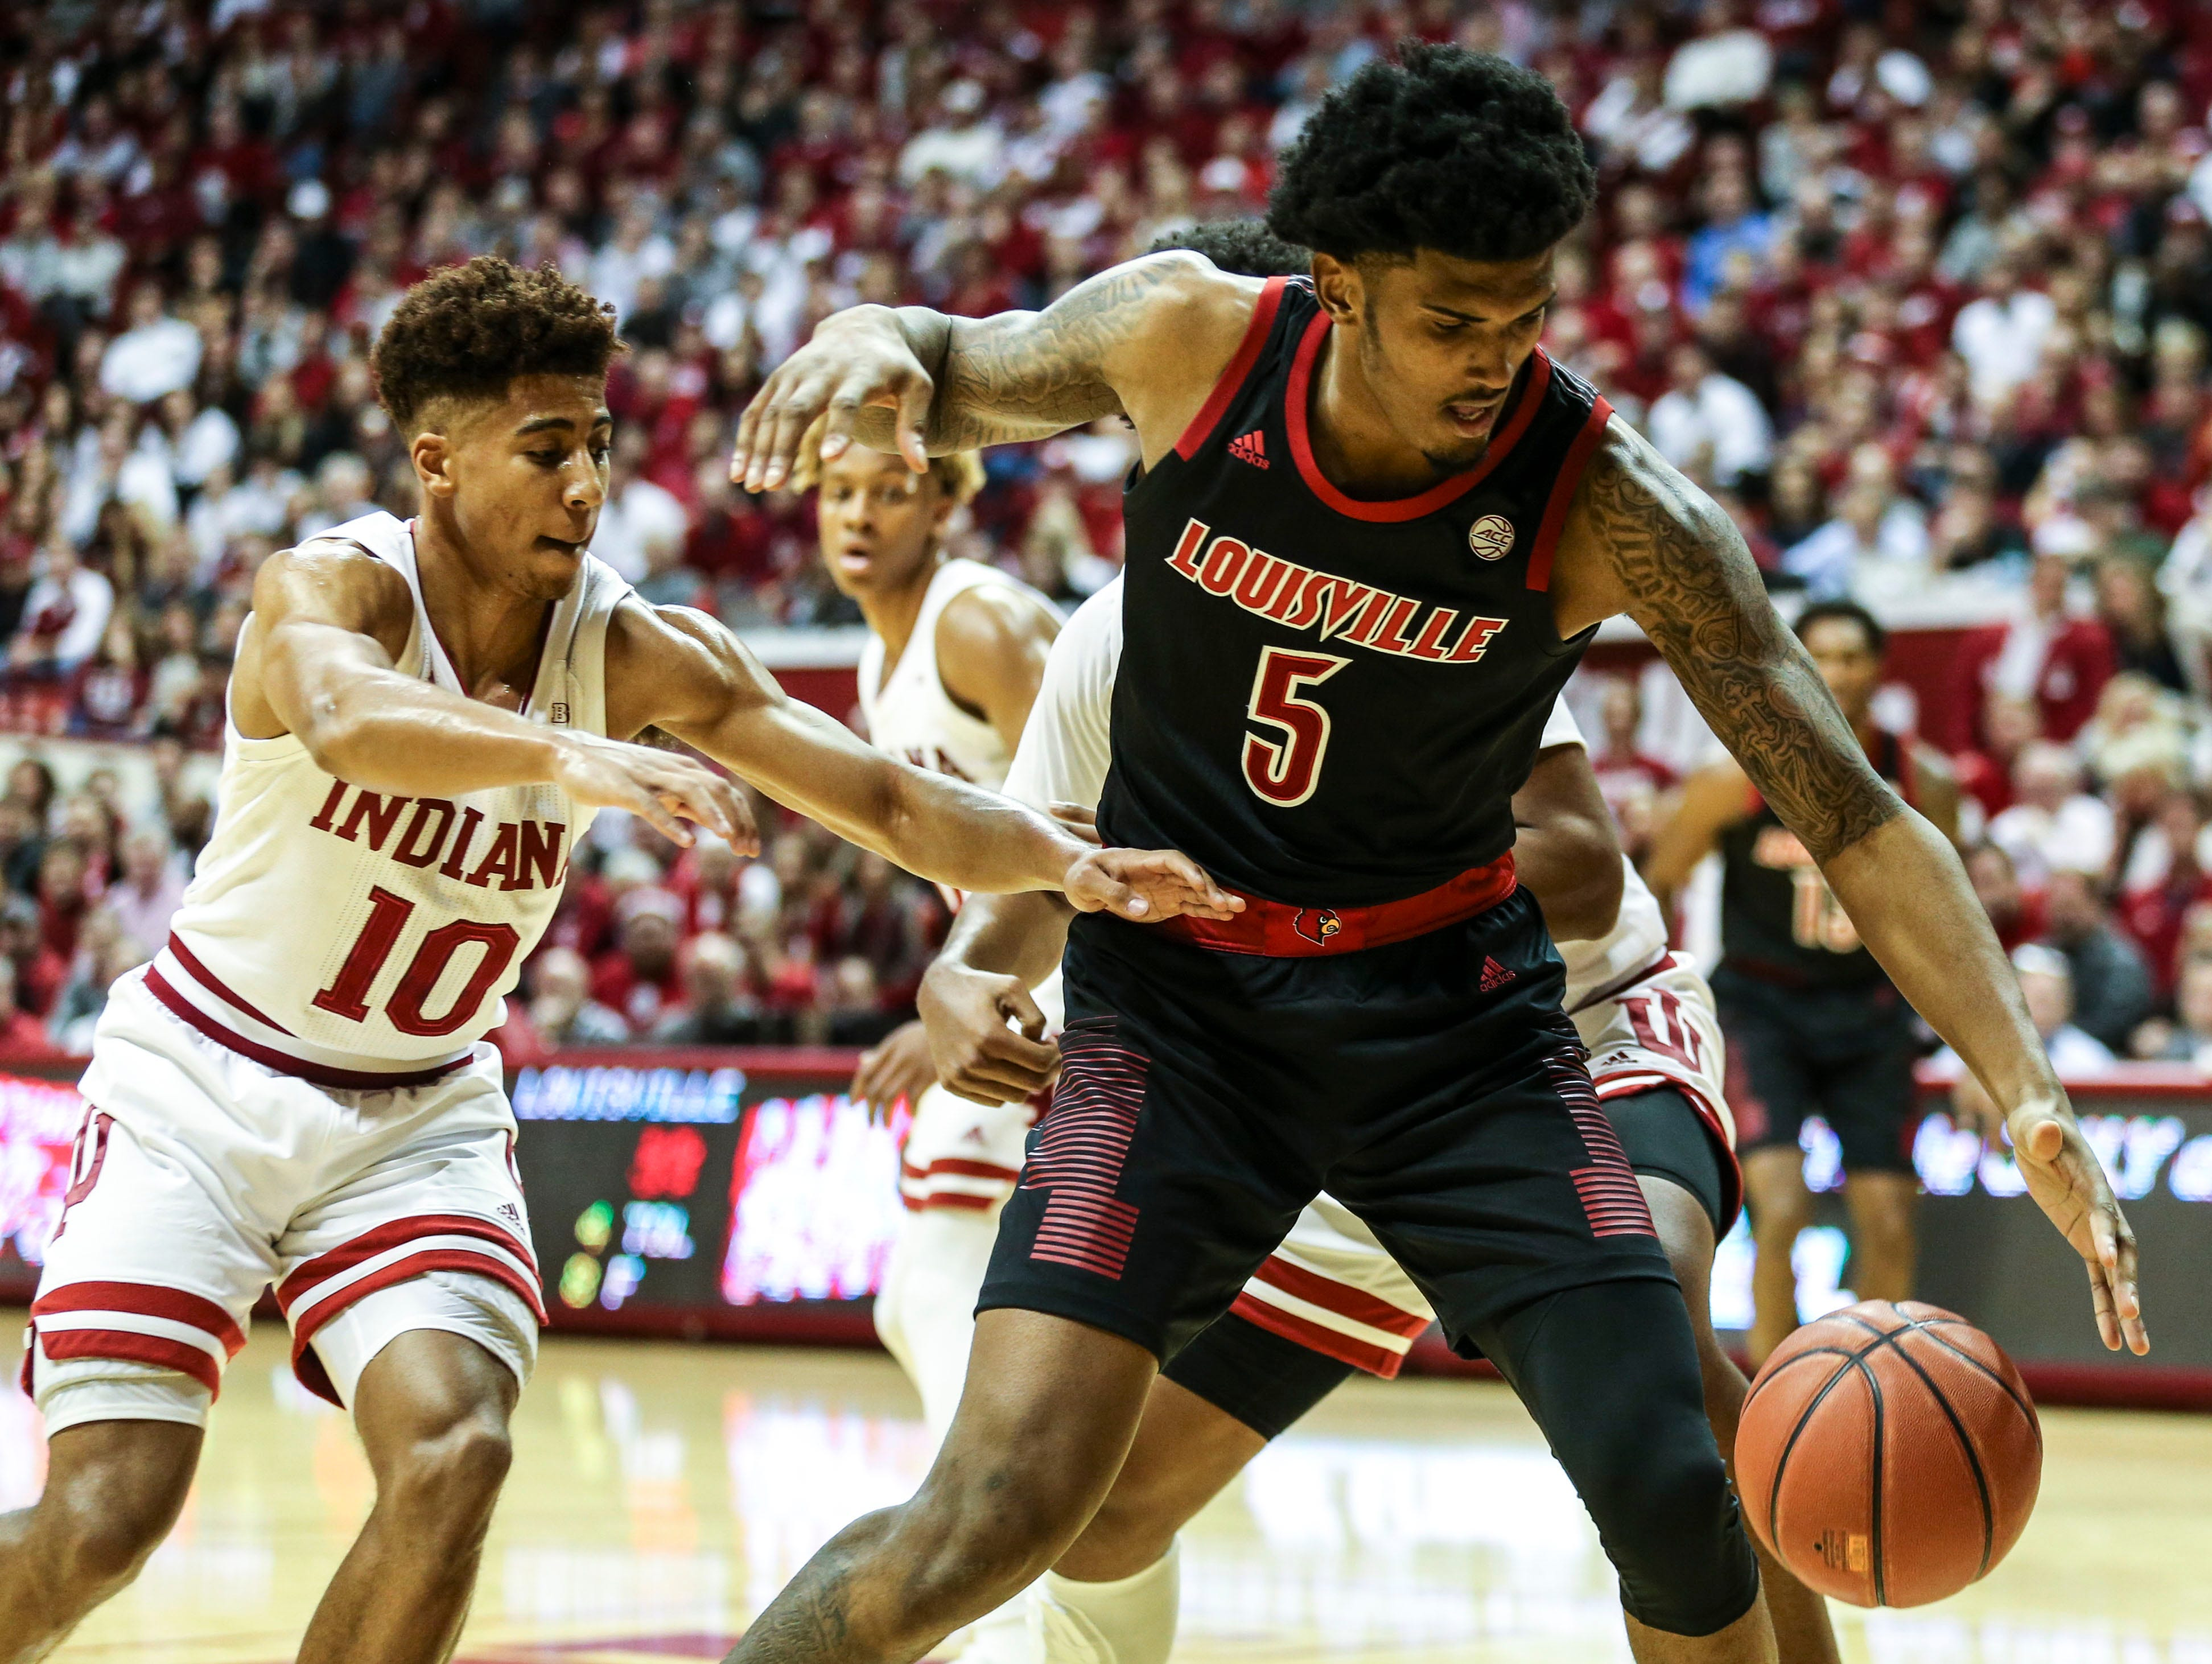 "Louisville's Malik Williams is pressured by Indiana's Rob Phinisee Saturday, Dec. 8, 2018 at Simon Skjodt Assembly Hall in Bloomington, Ind. ""We couldn't establish anything inside today,"" said Mack afterwards. The Hoosiers beat Louisville 68-67"